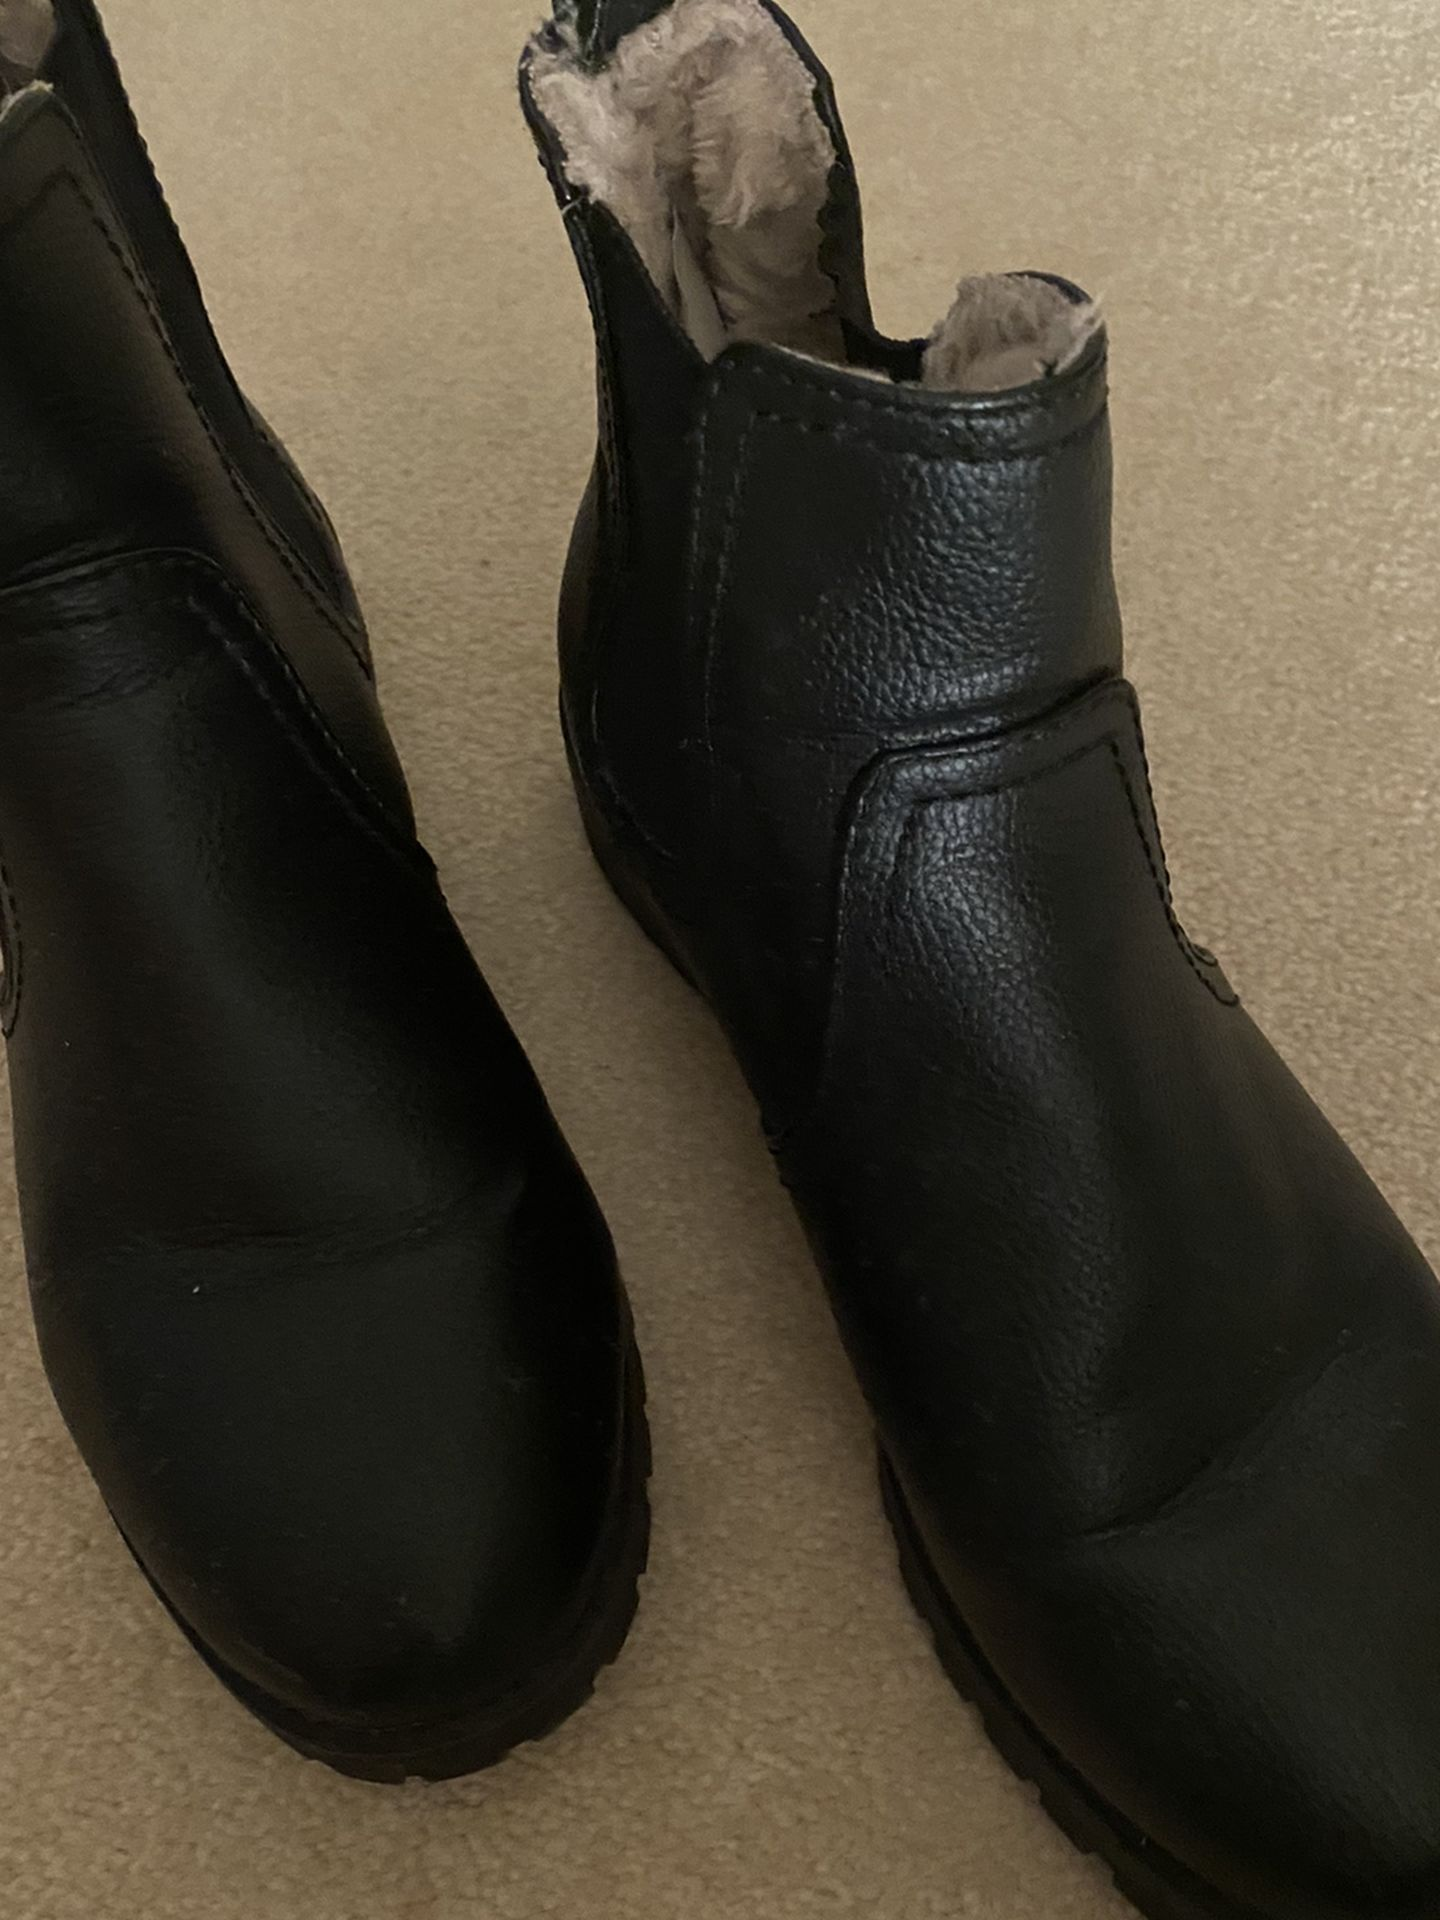 Black Booties For Snow Or Going Out